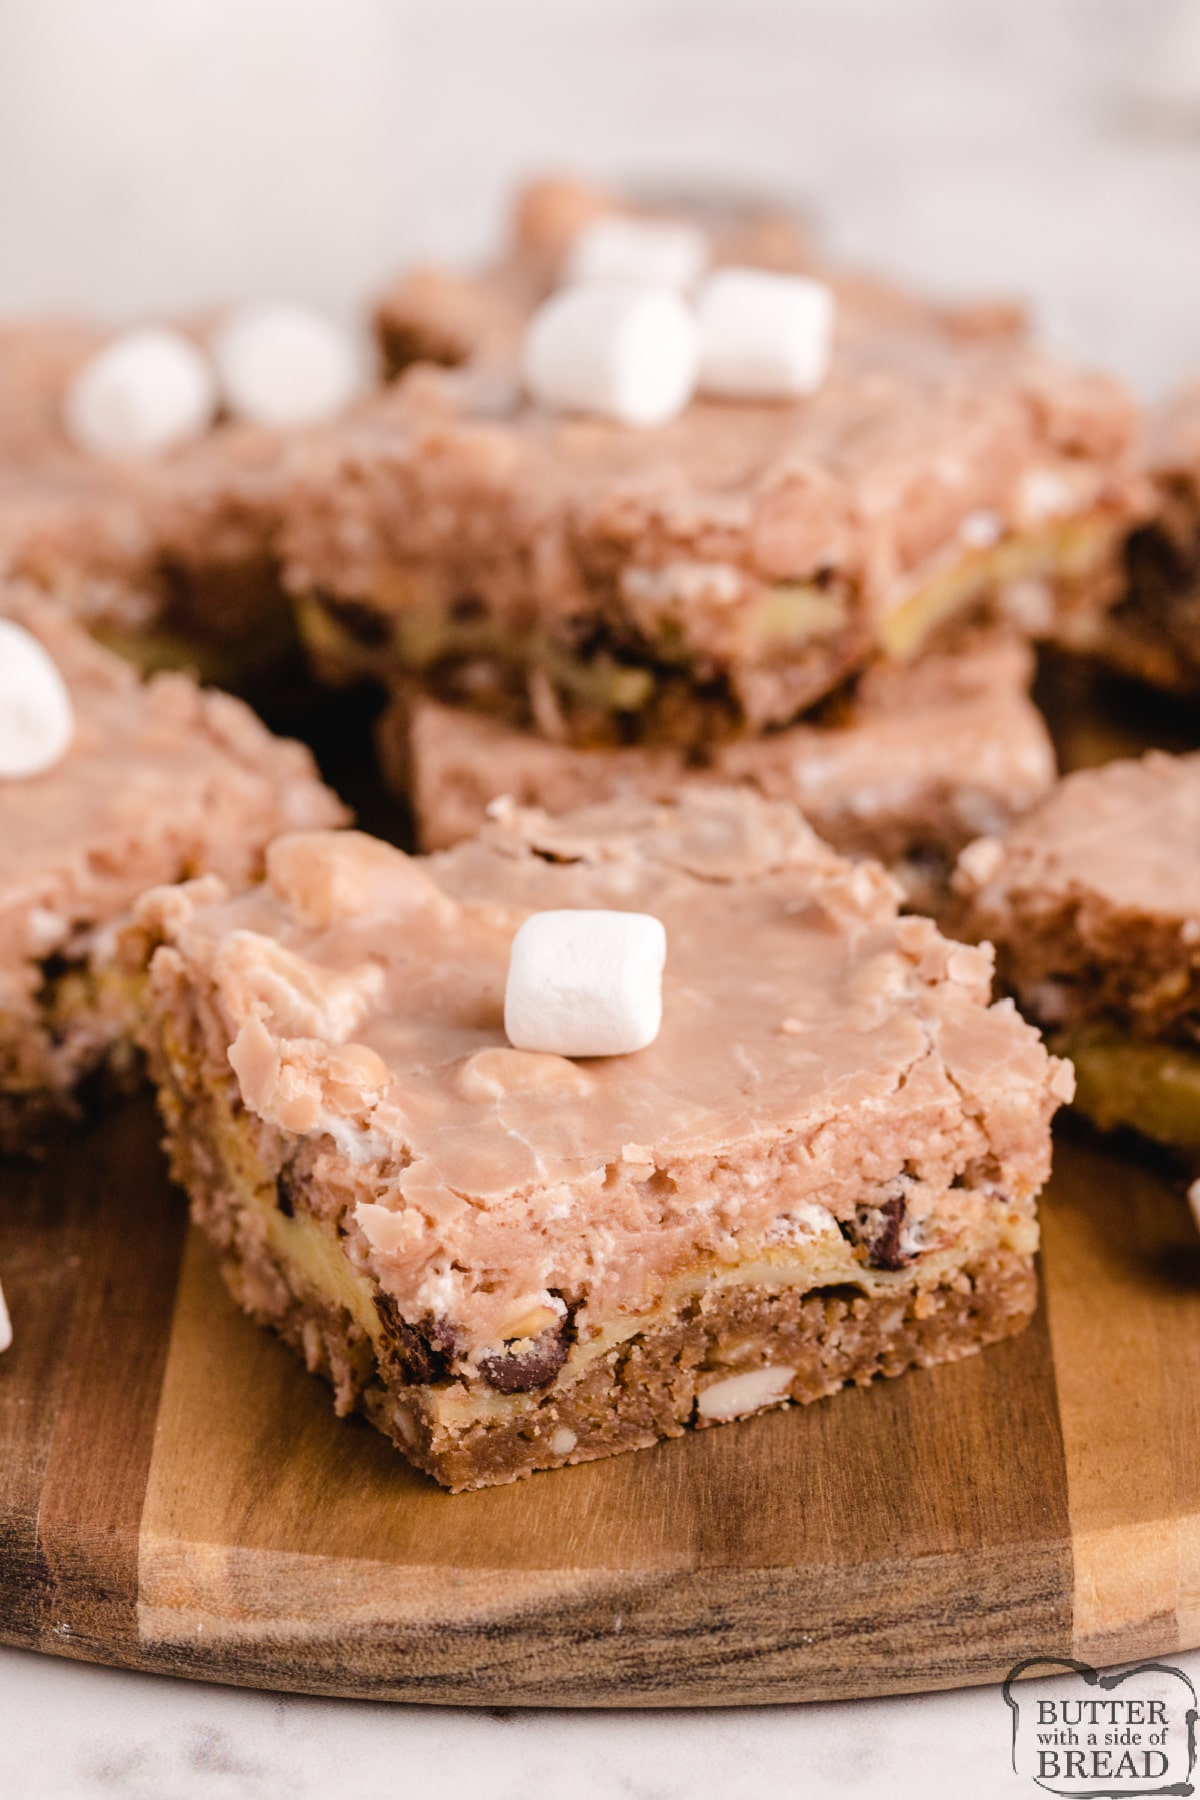 made with three layers of chocolate, marshmallows and almonds. Delicious Rocky Road dessert recipe that is easy to make and tastes like a cross between cheesecake and fudge!